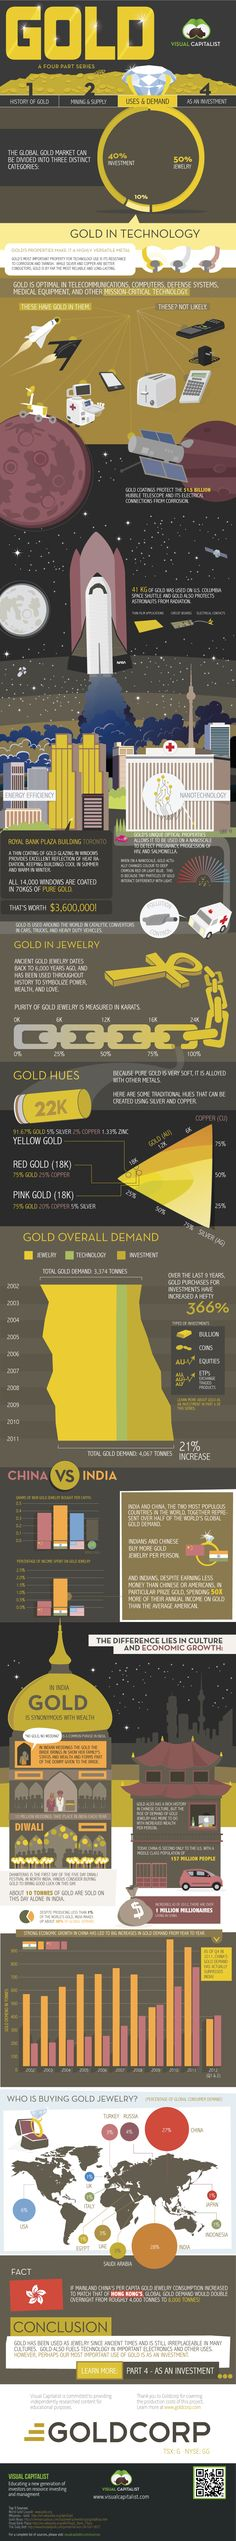 Gold: Uses and Demand [INFOGRAPHIC]